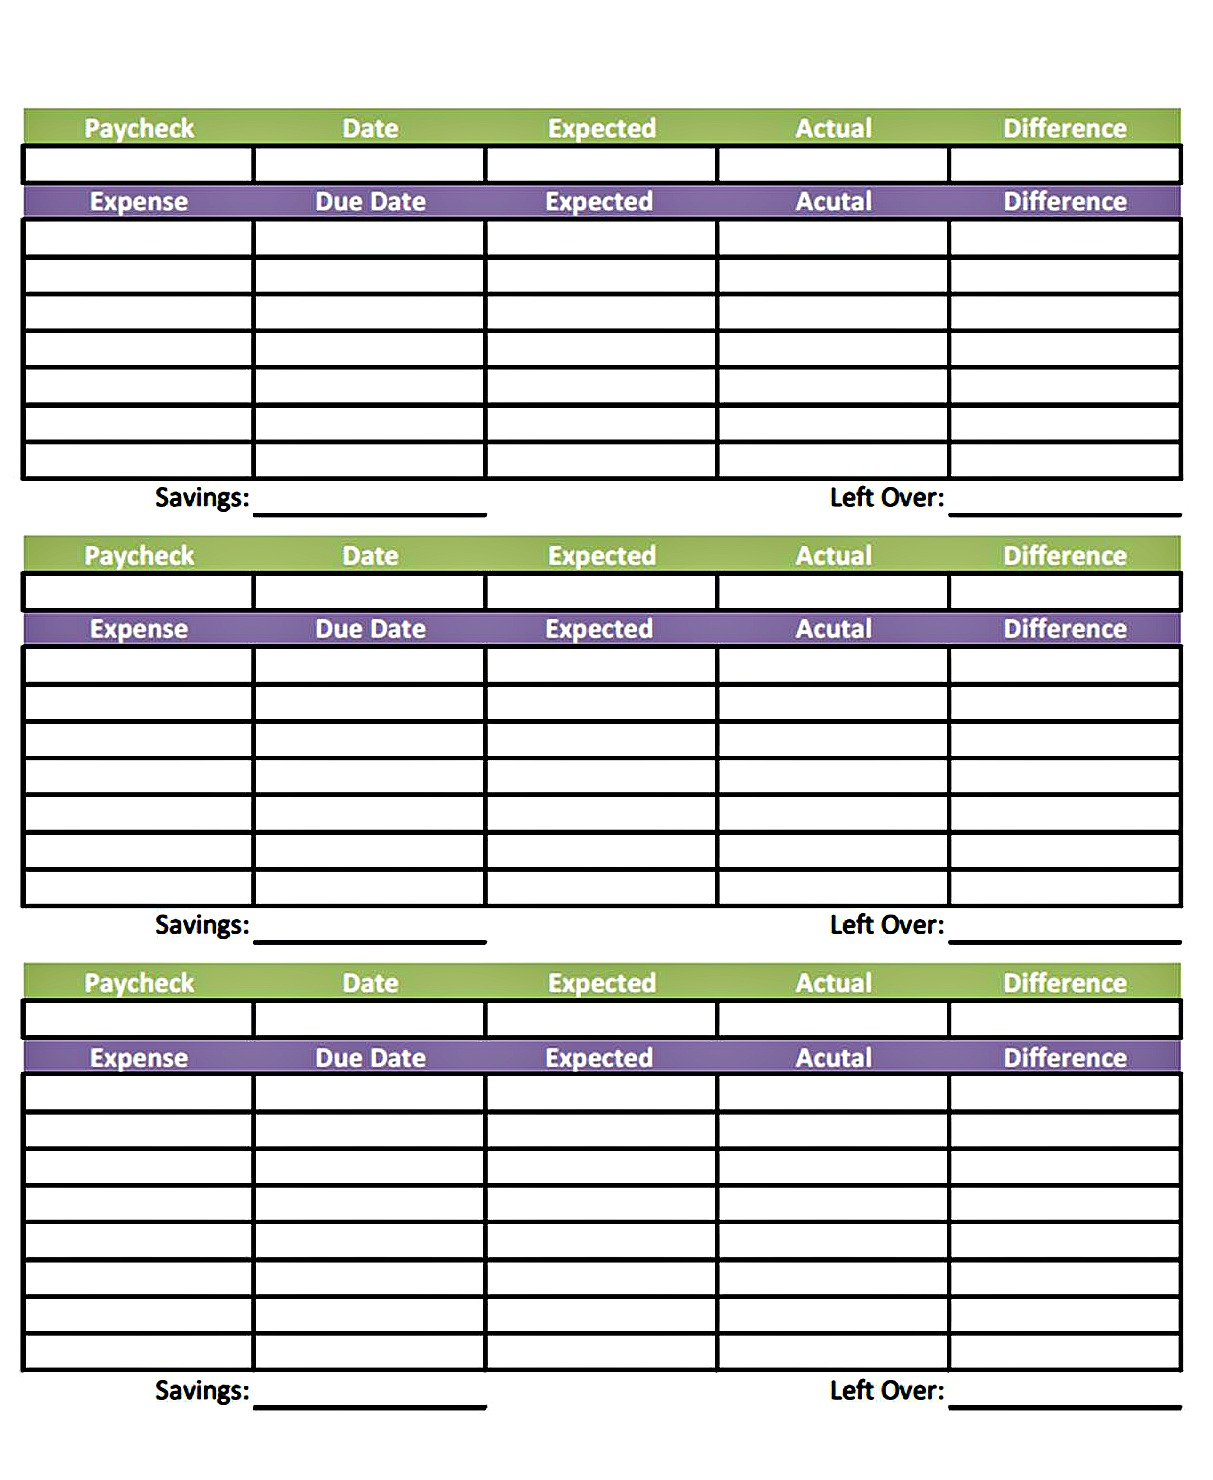 Worksheet Bi Weekly Budget Worksheet bonfires and wine livin paycheck to free printable just right click save each of the pictures or if you want file sent in an editable document so can make your